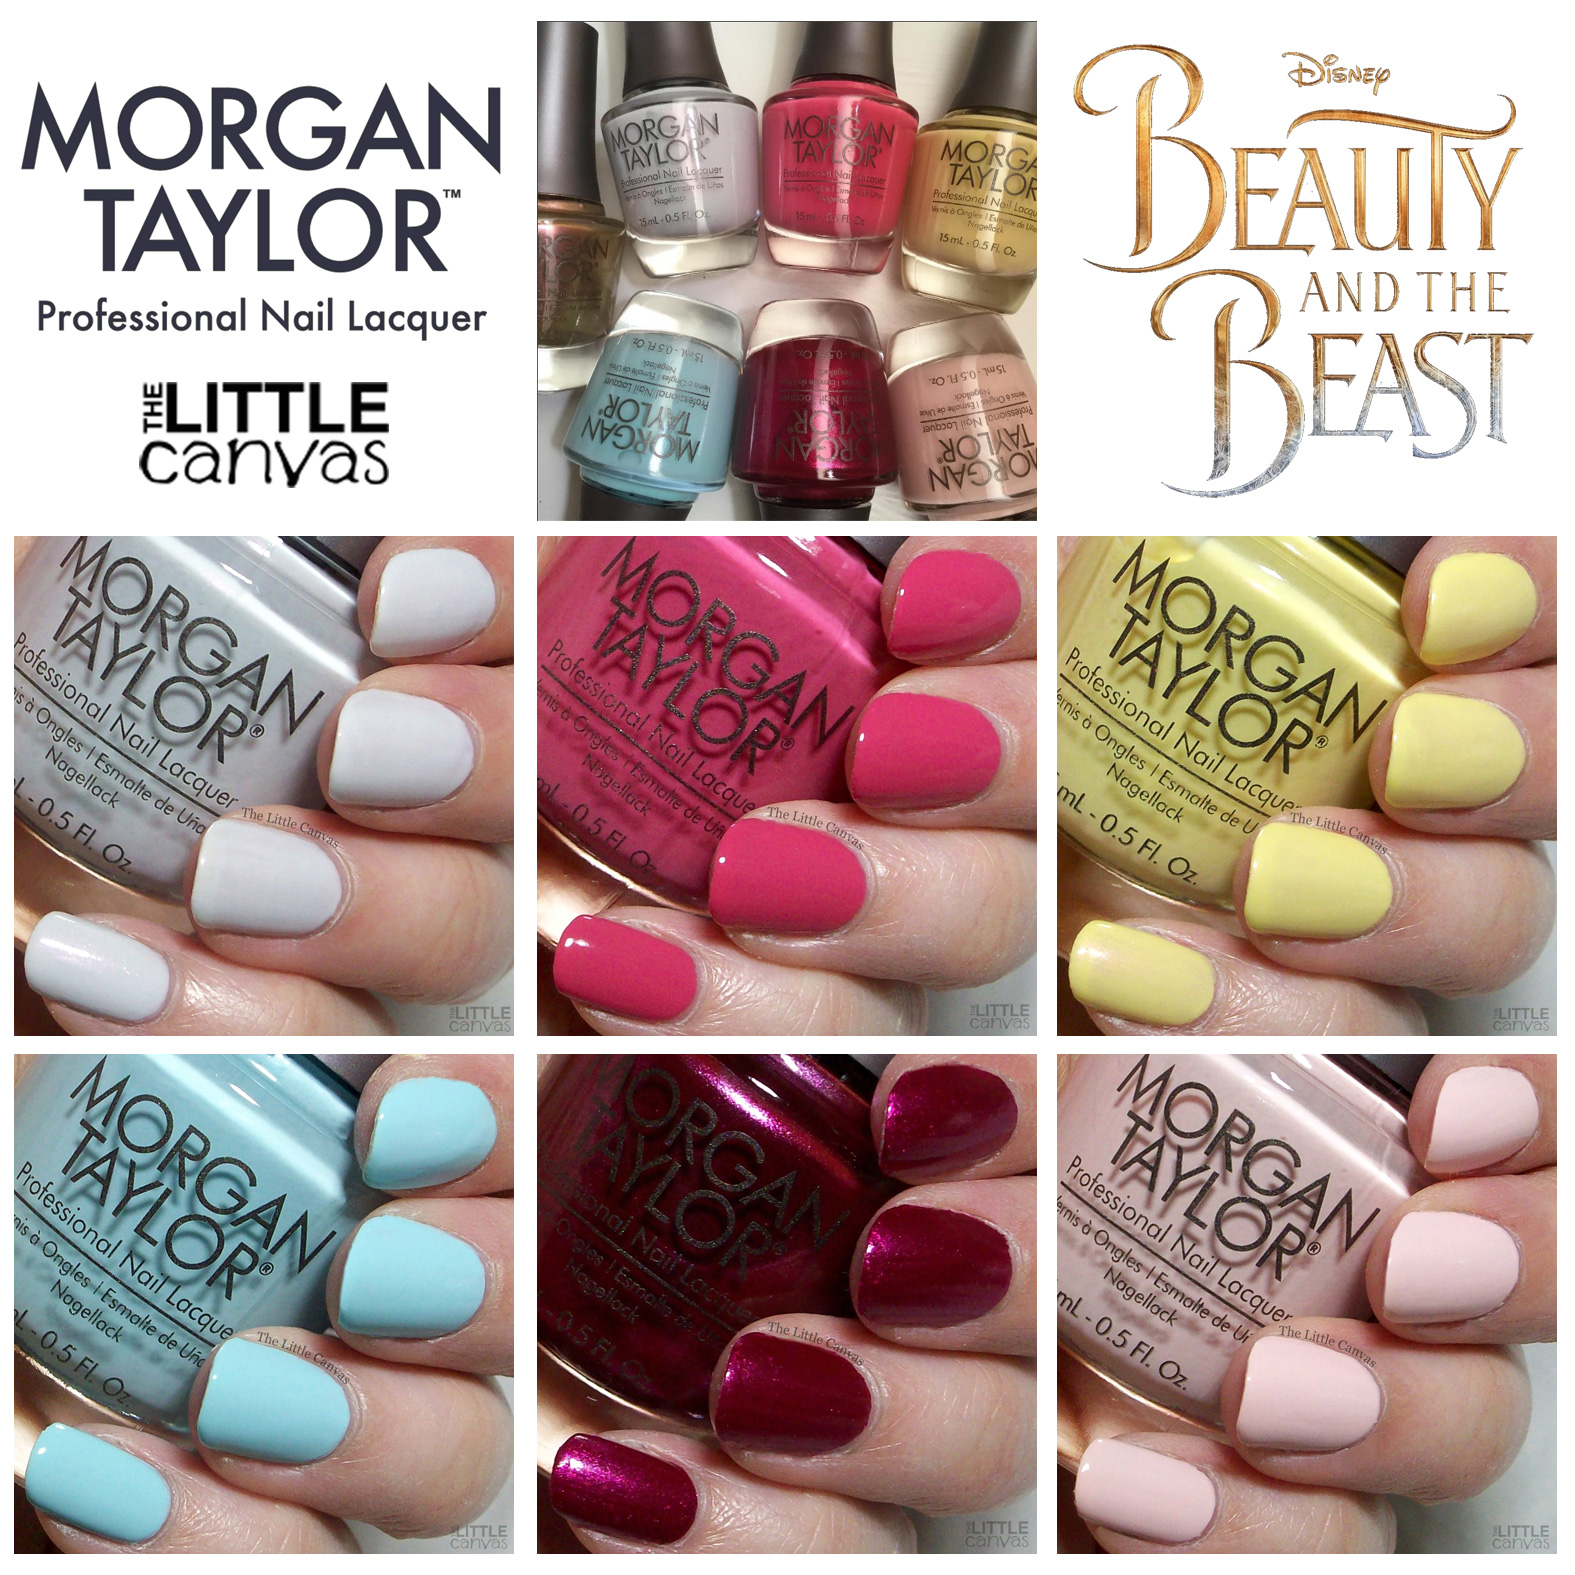 Enough Of My Babbling The Beauty And Beast Collection Consists 6 Polishes 1 Top Coat Let S Take A Look